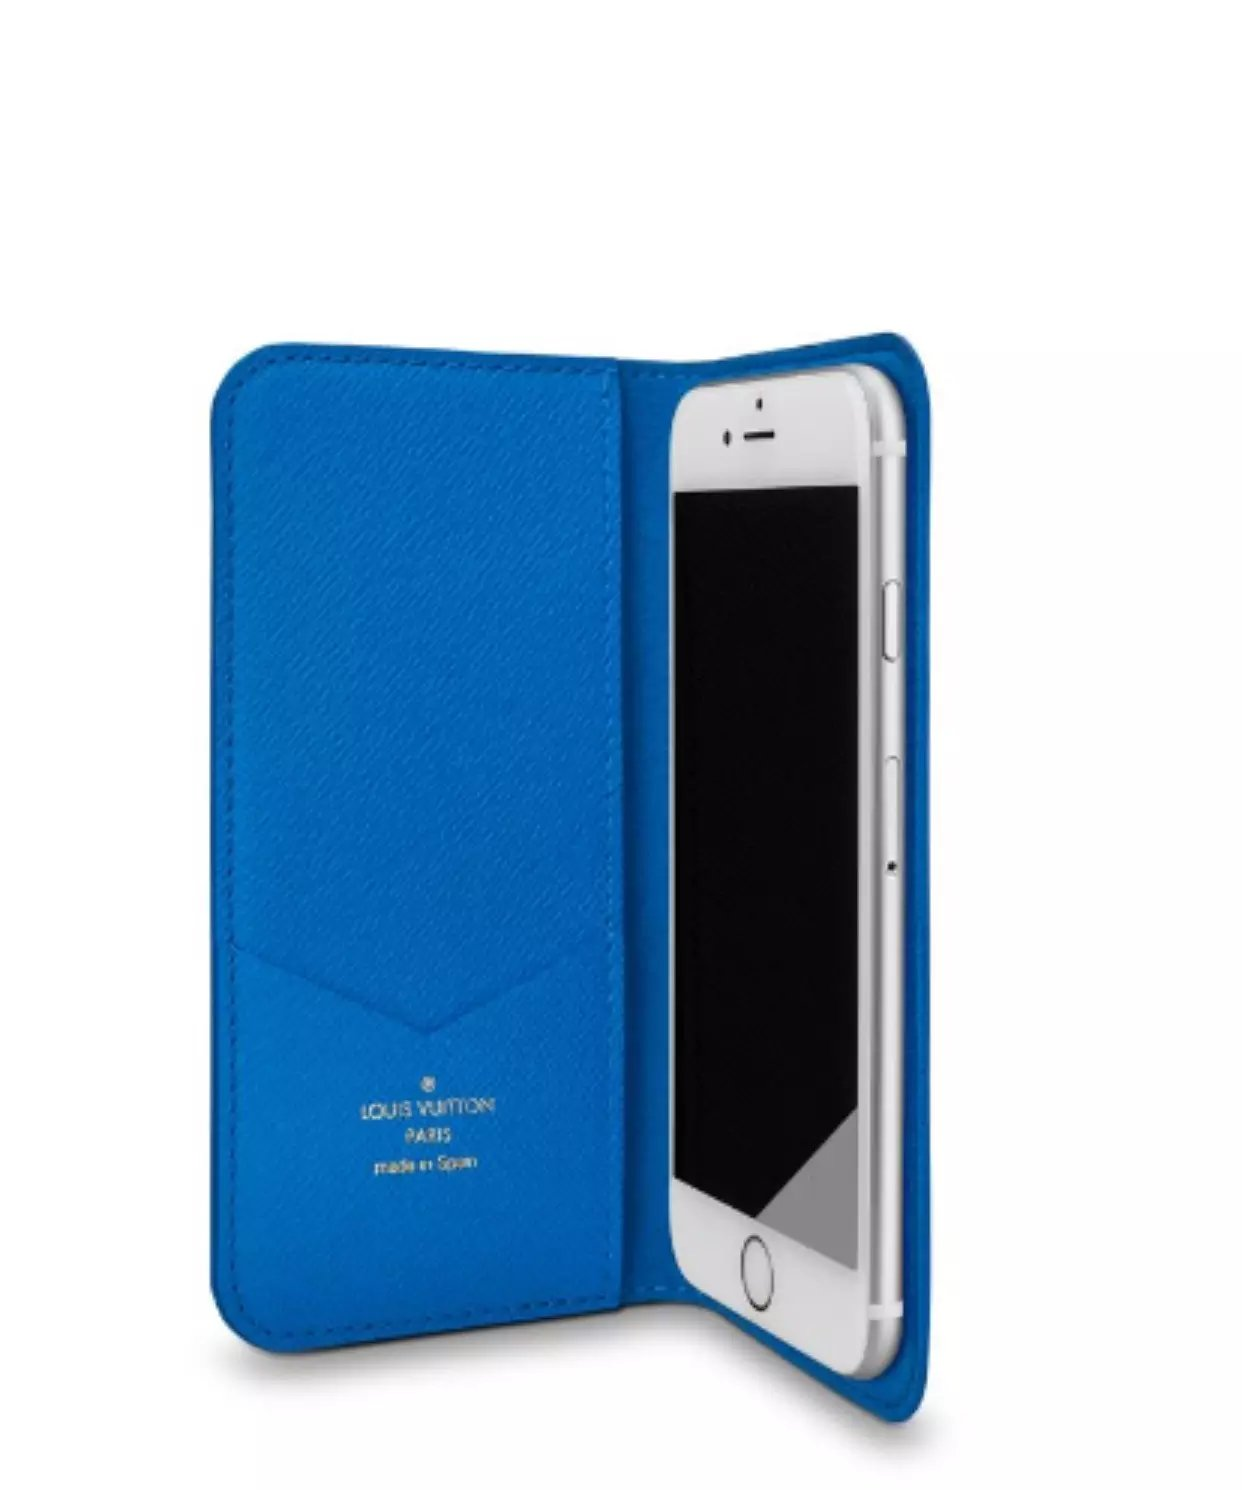 iphone hülle foto iphone case bedrucken Louis Vuitton iphone7 Plus hülle handy hüllen iphone 7 Plus iphone 6 preis iphone filzhülle iphone 7 Plus baustellen hülle iphone 7 Plus hutzhülle silikon iphone fotohülle